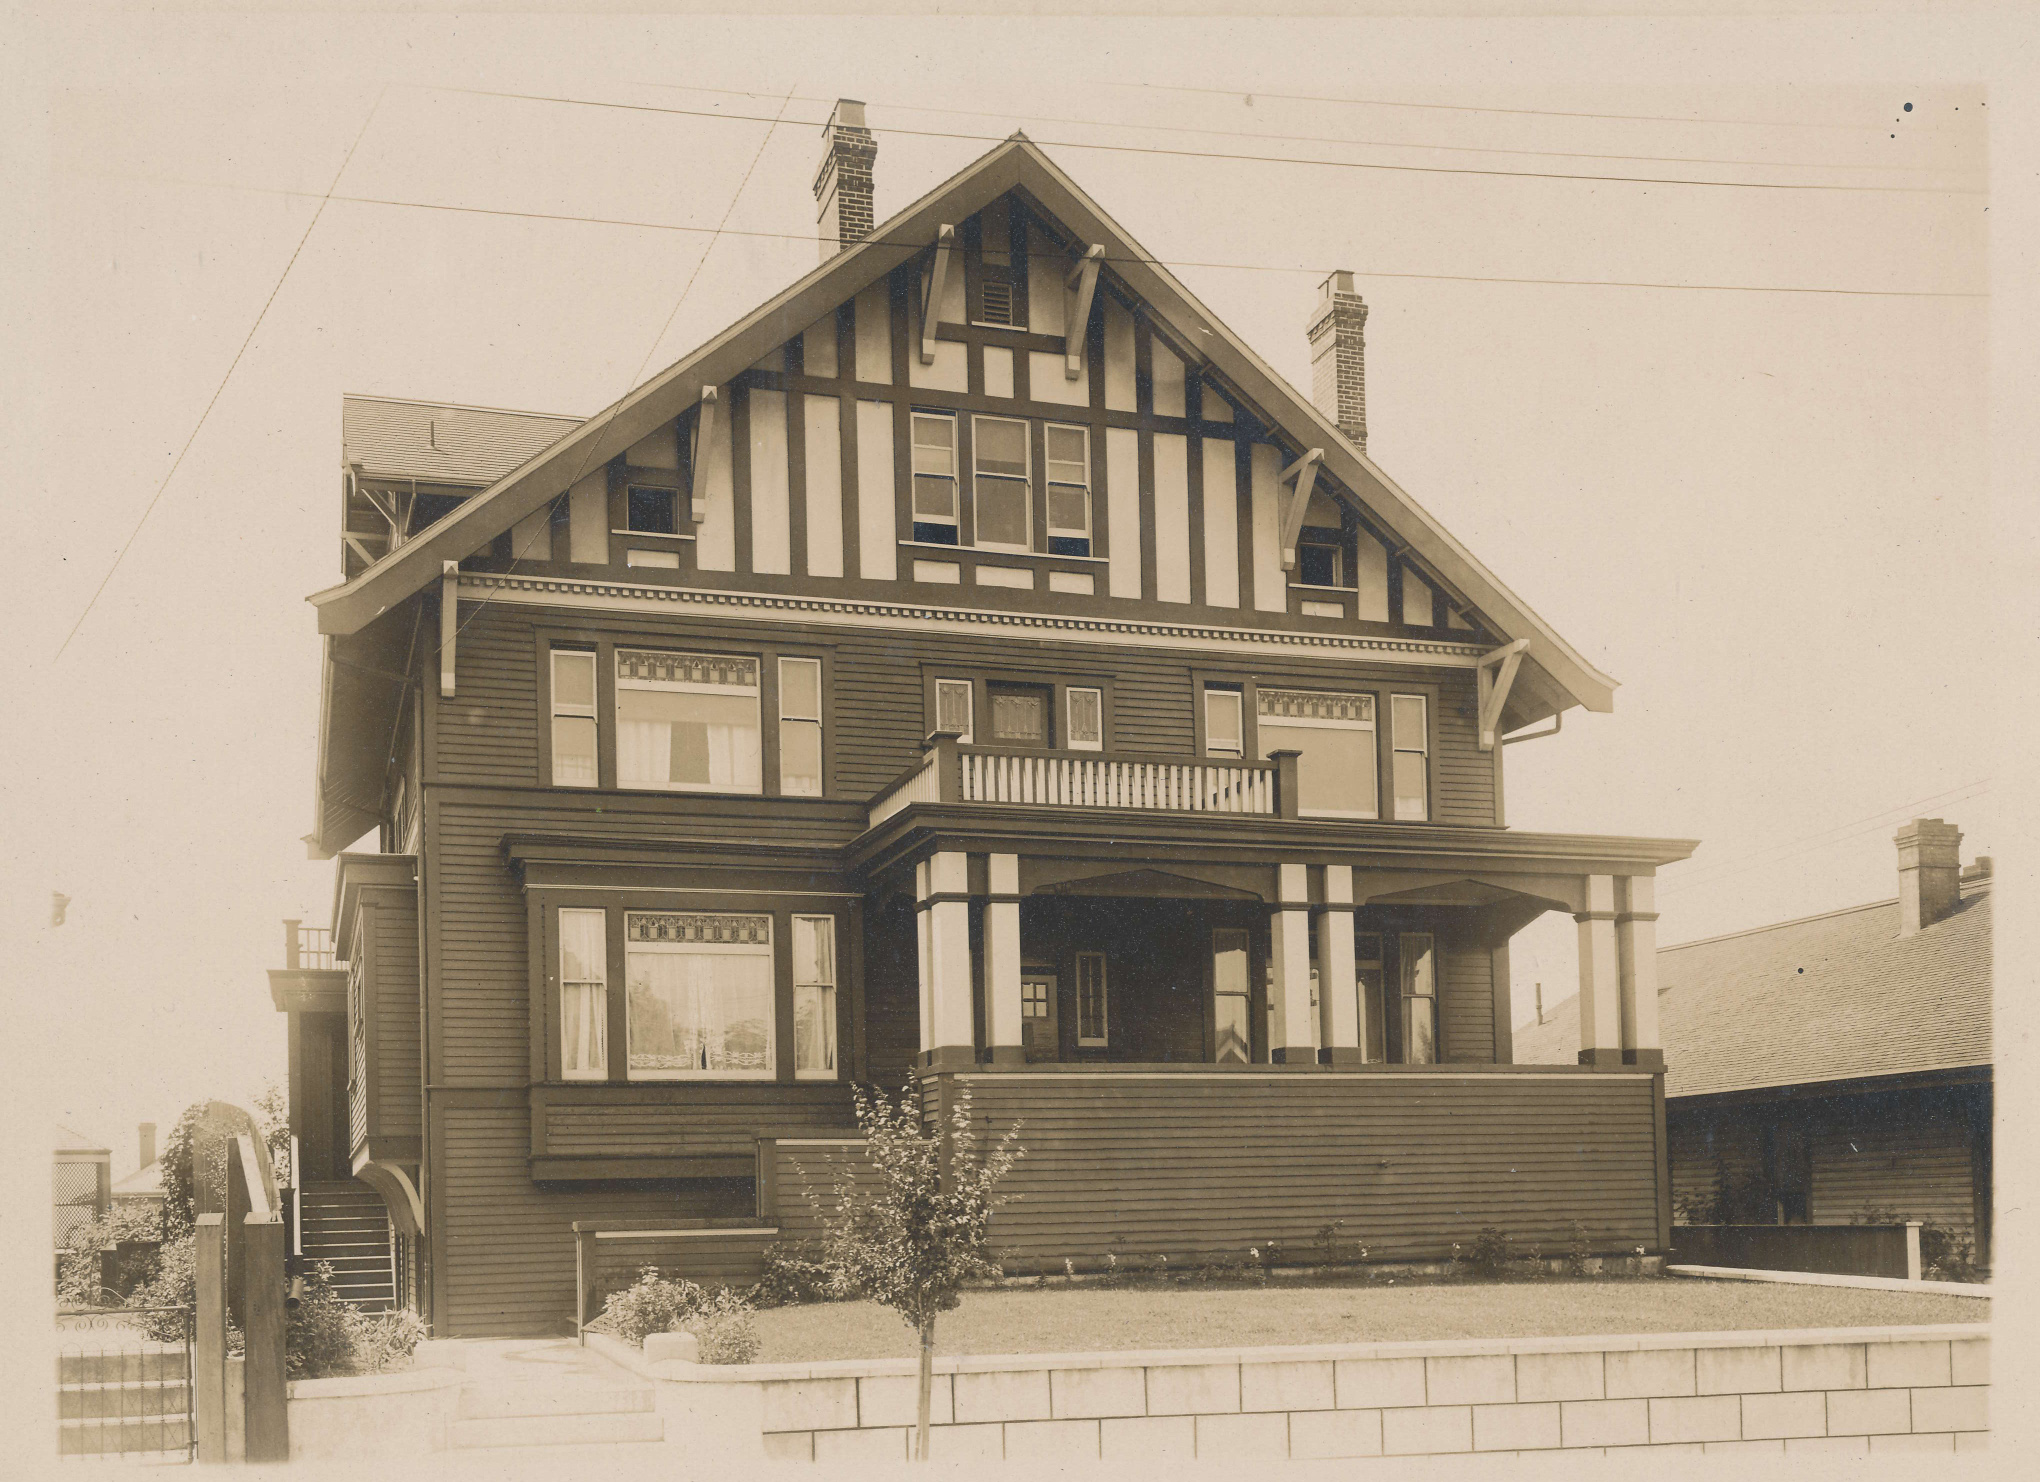 652 Battery Street - 1914 - photo courtesy of Joan Ryan